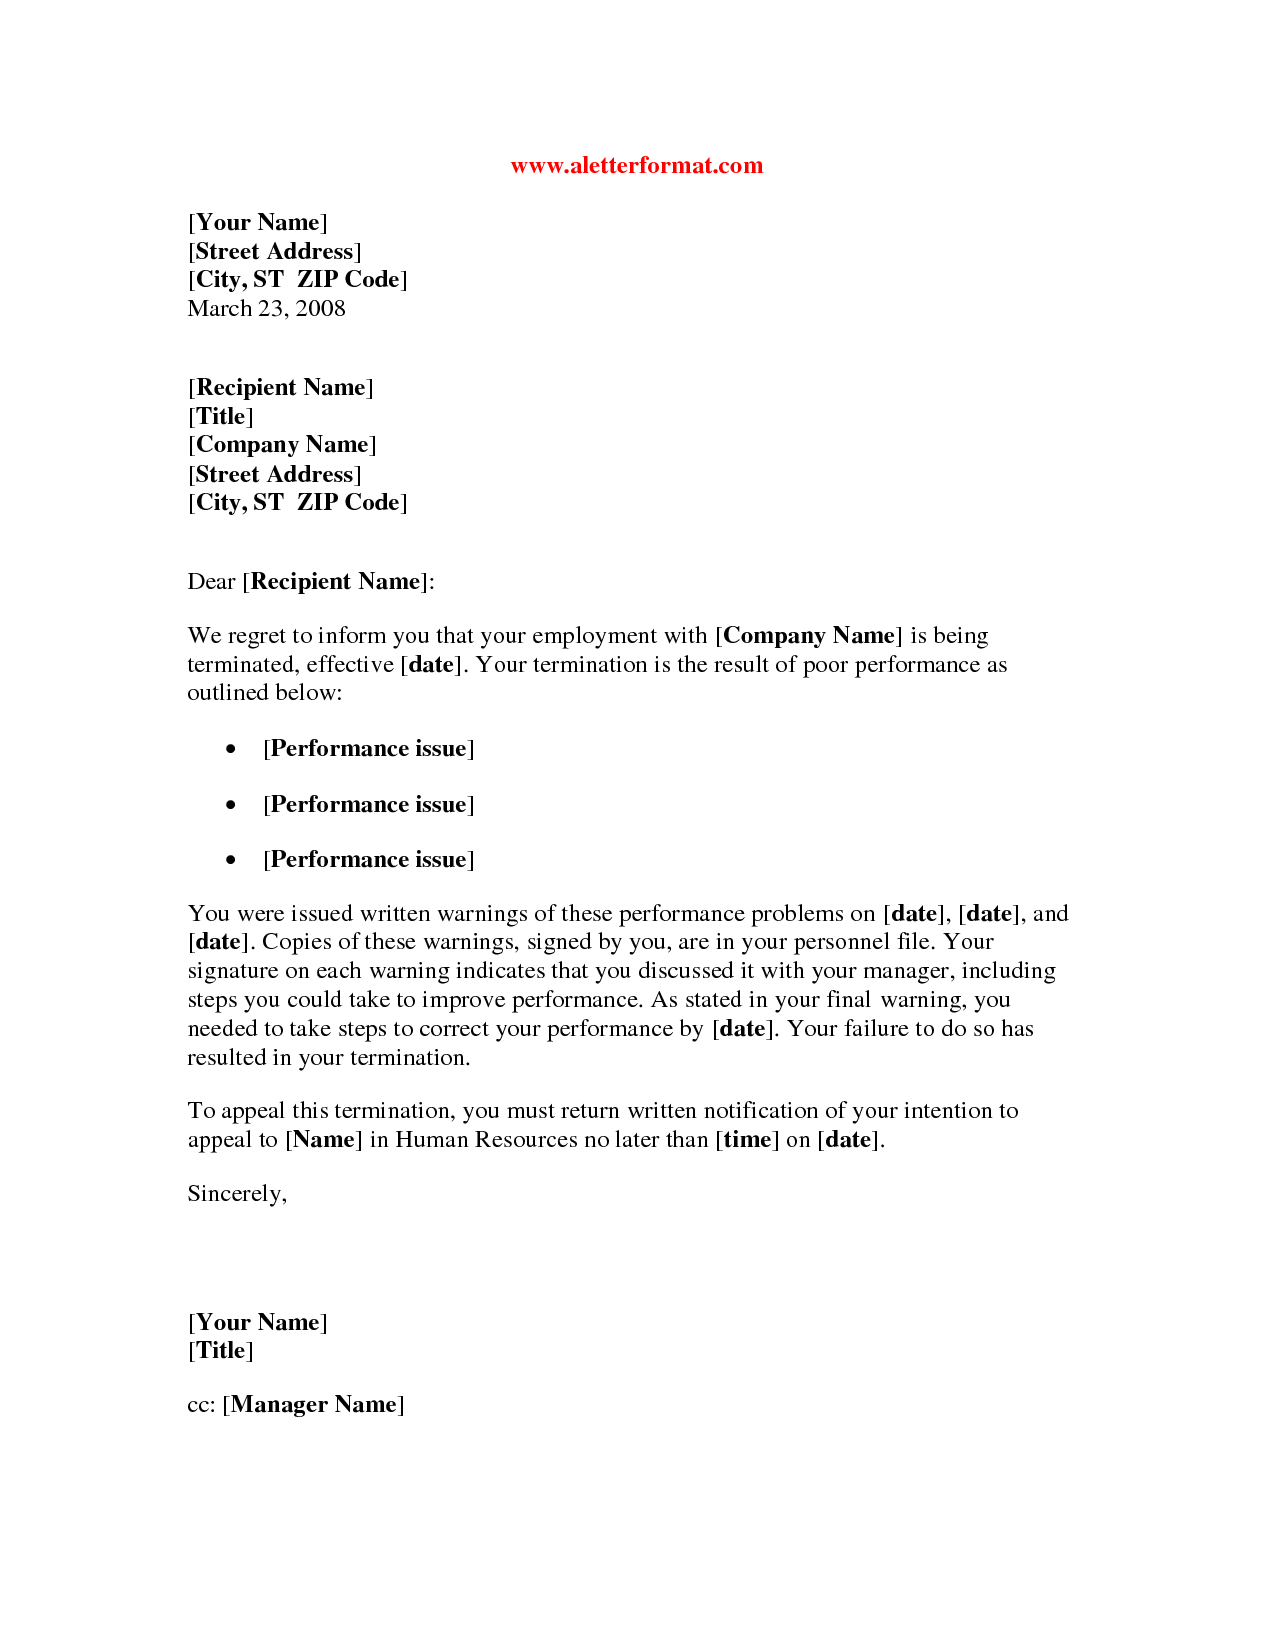 Sample Termination Letter Employee Poor Performance Free Template